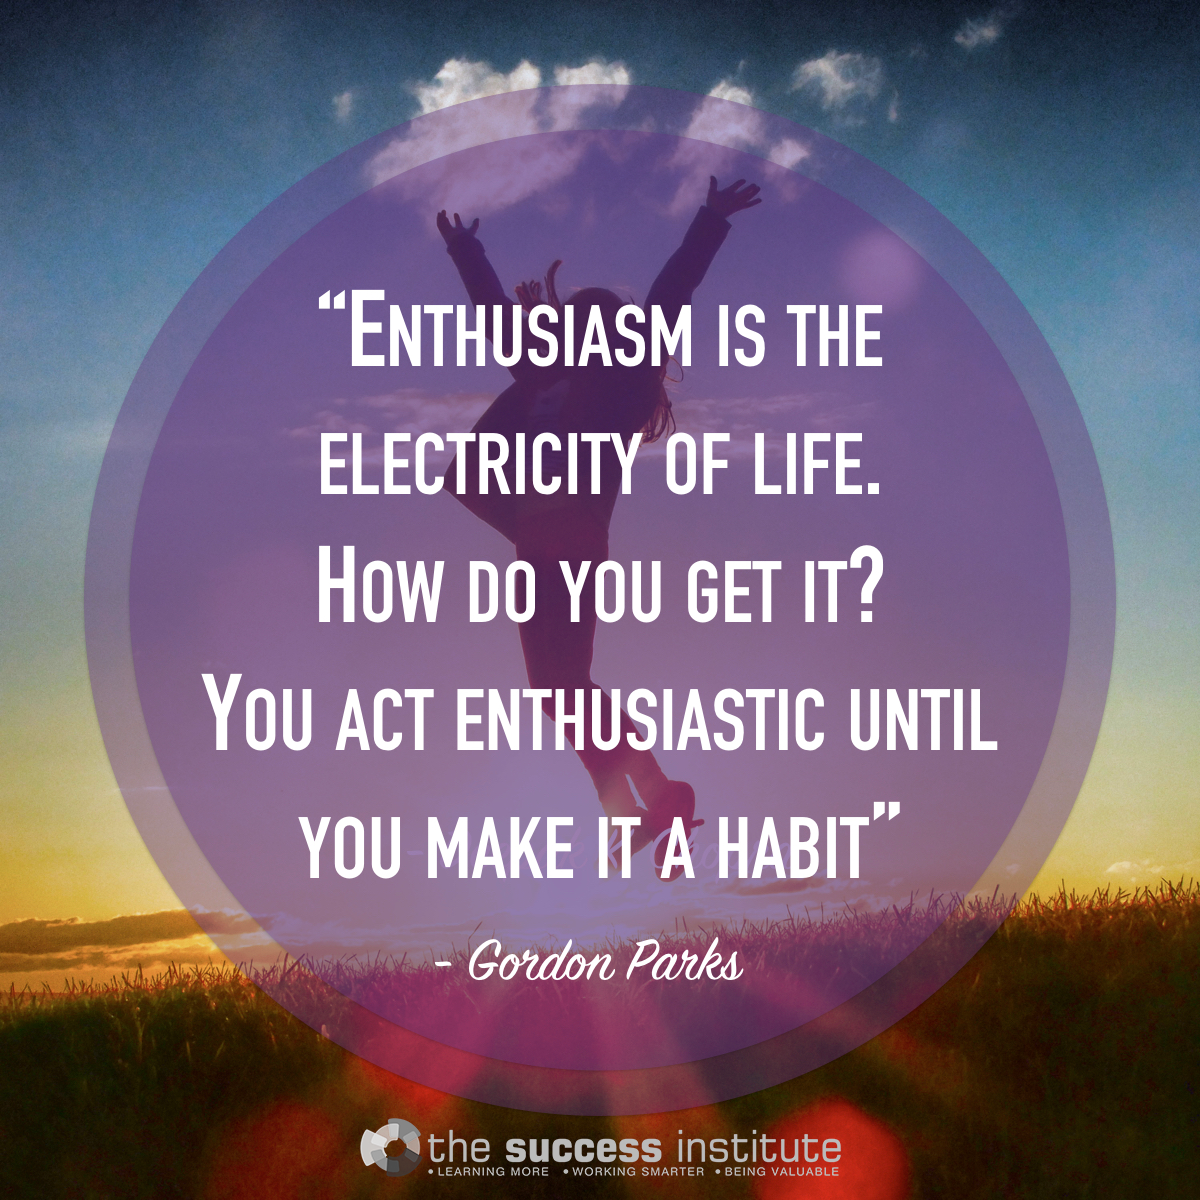 Enthusiasm is the electricity of life.